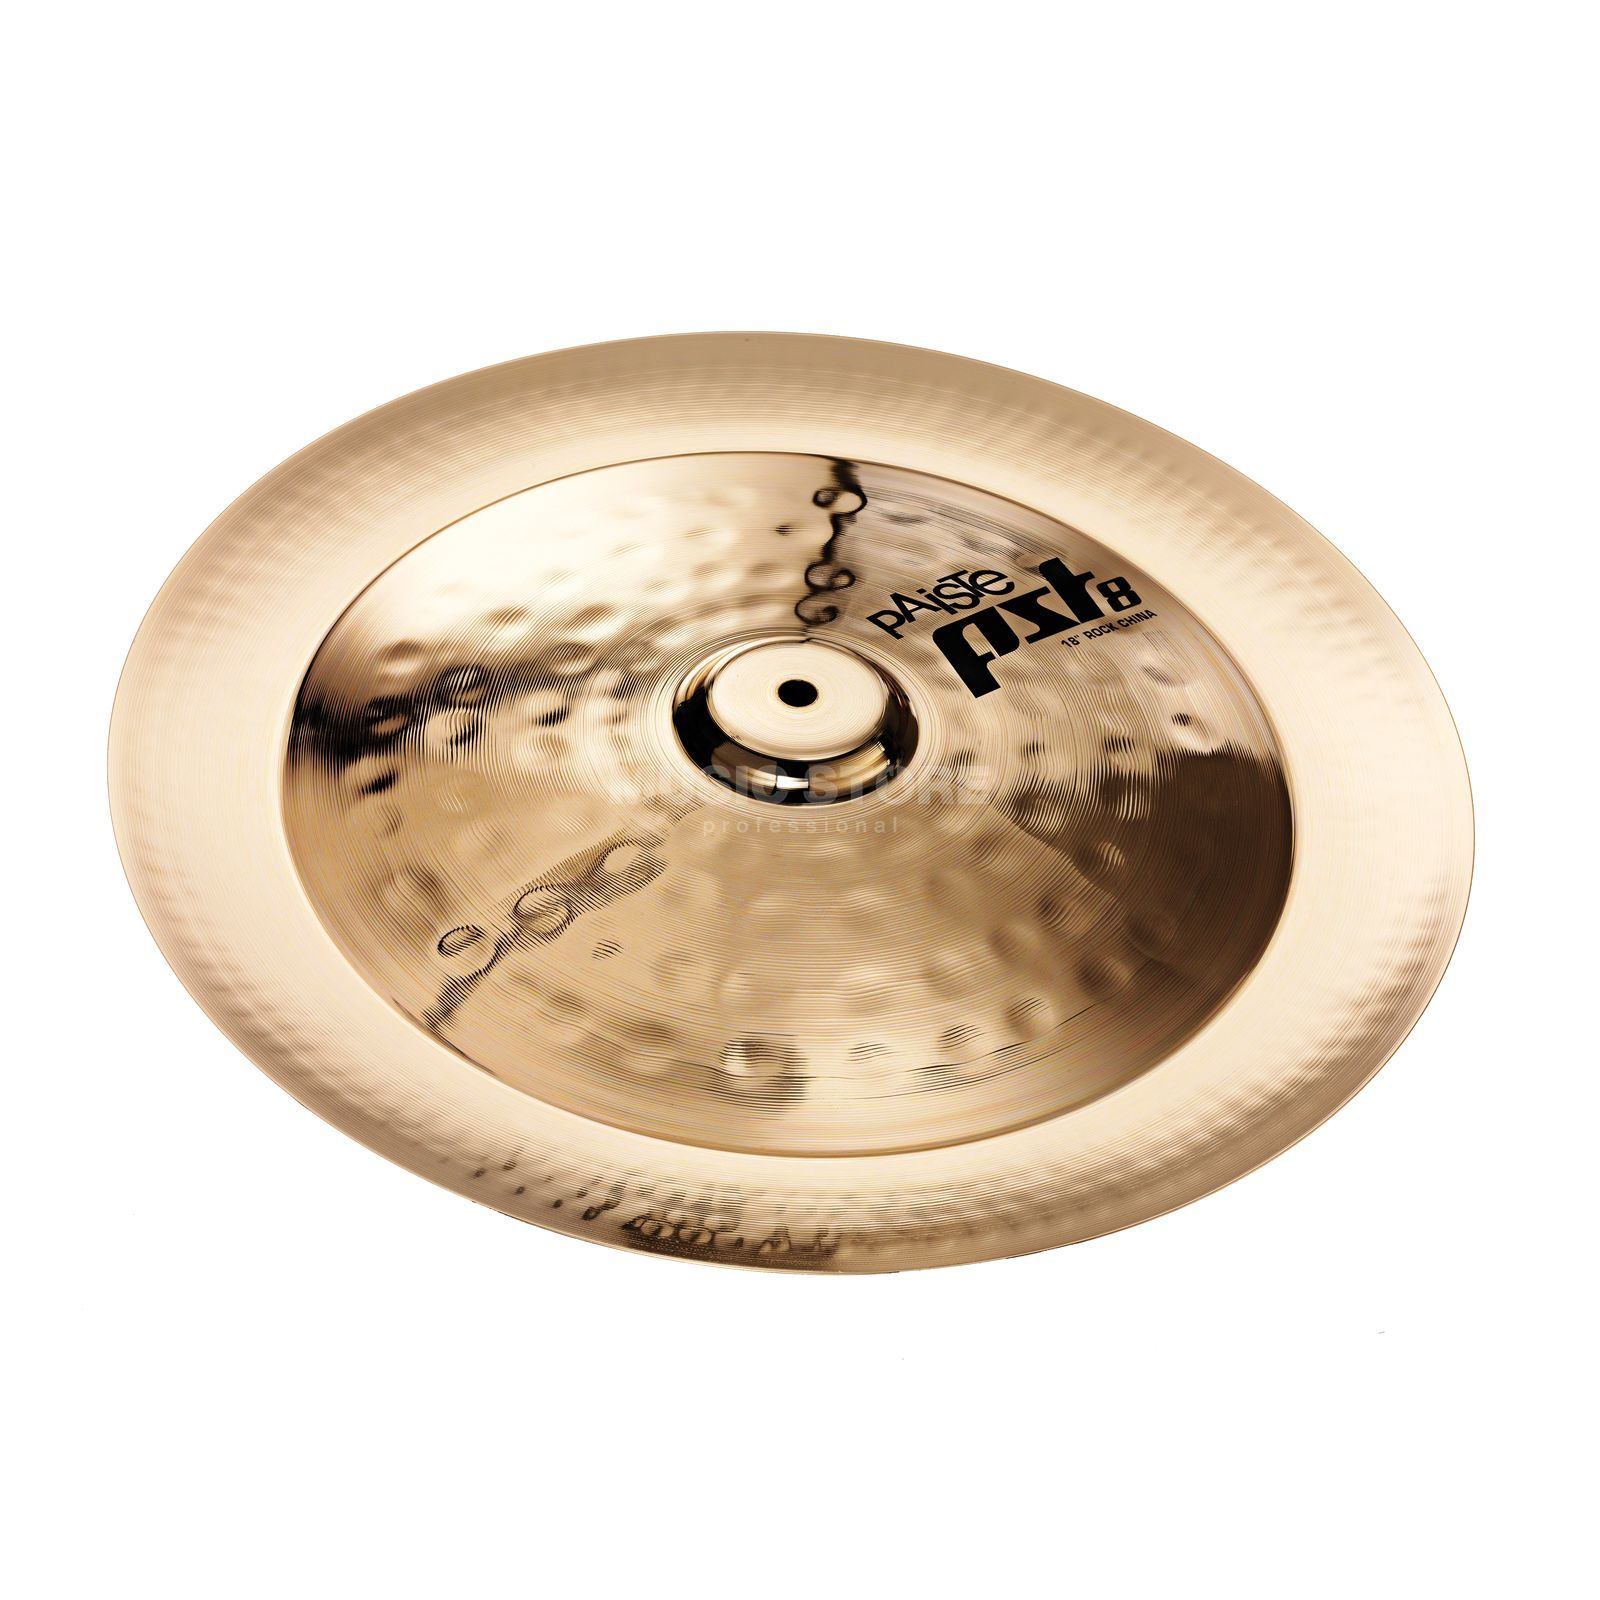 "Paiste PST8 Rock China 18"", Reflector Finish Produktbild"